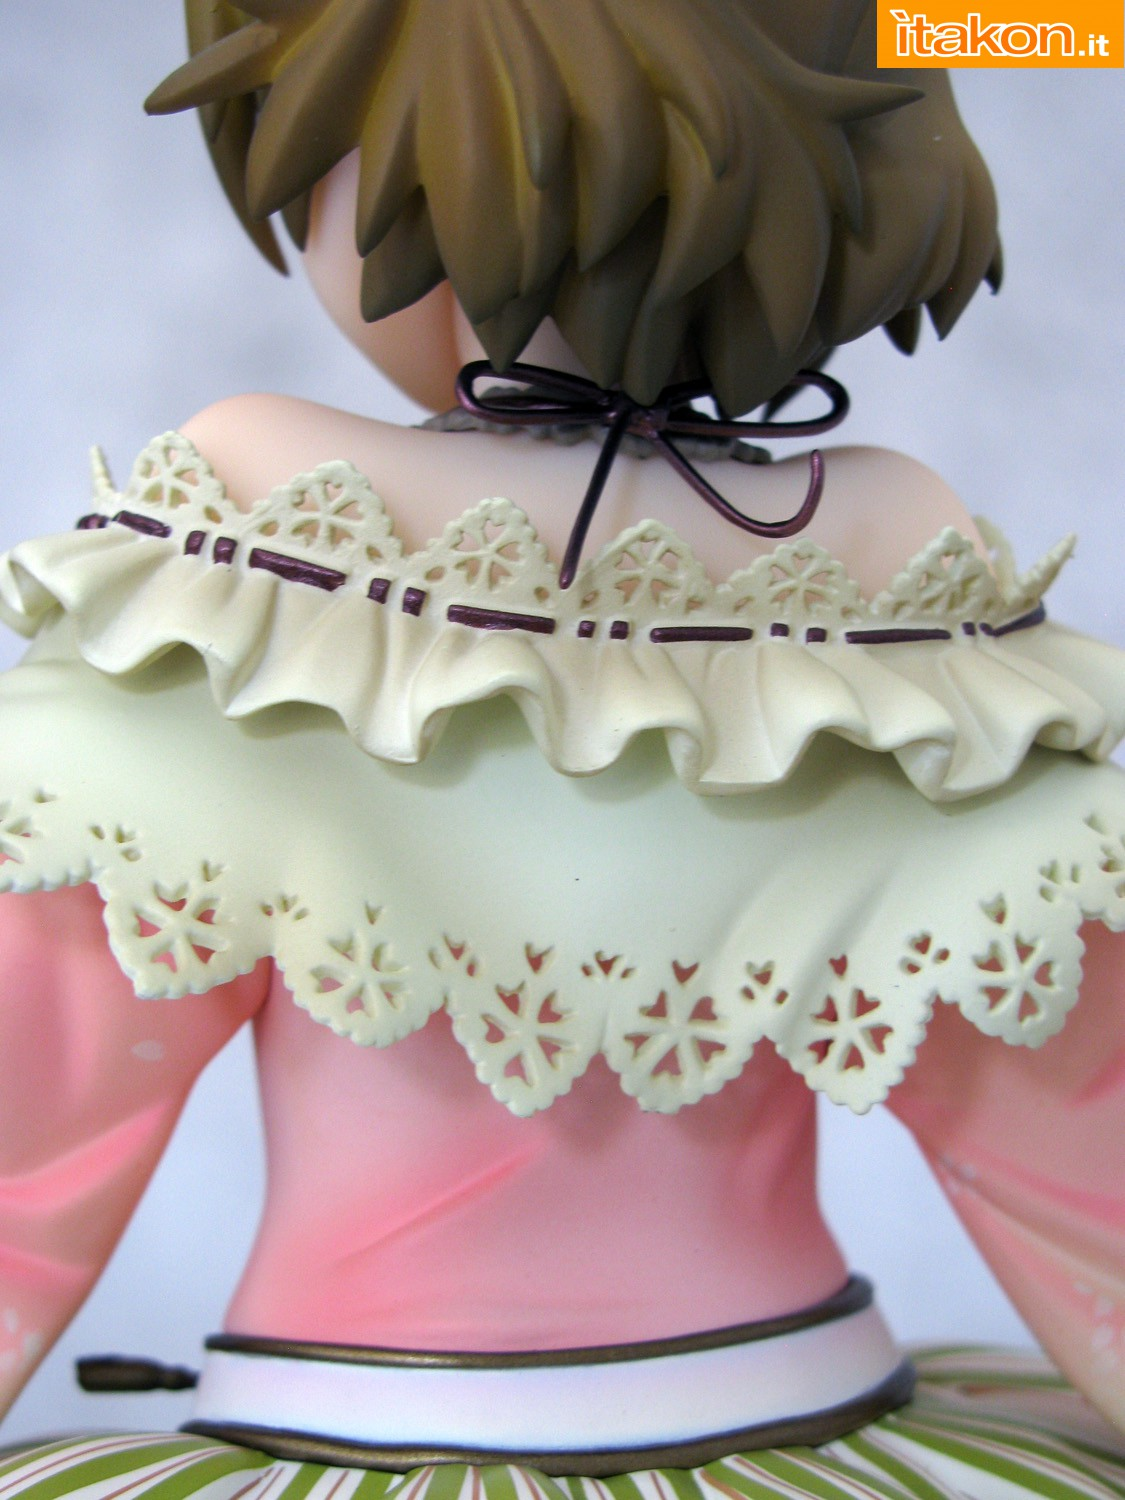 Link a 043 Hanayo Koizkumi March Love Live ALTER recensione